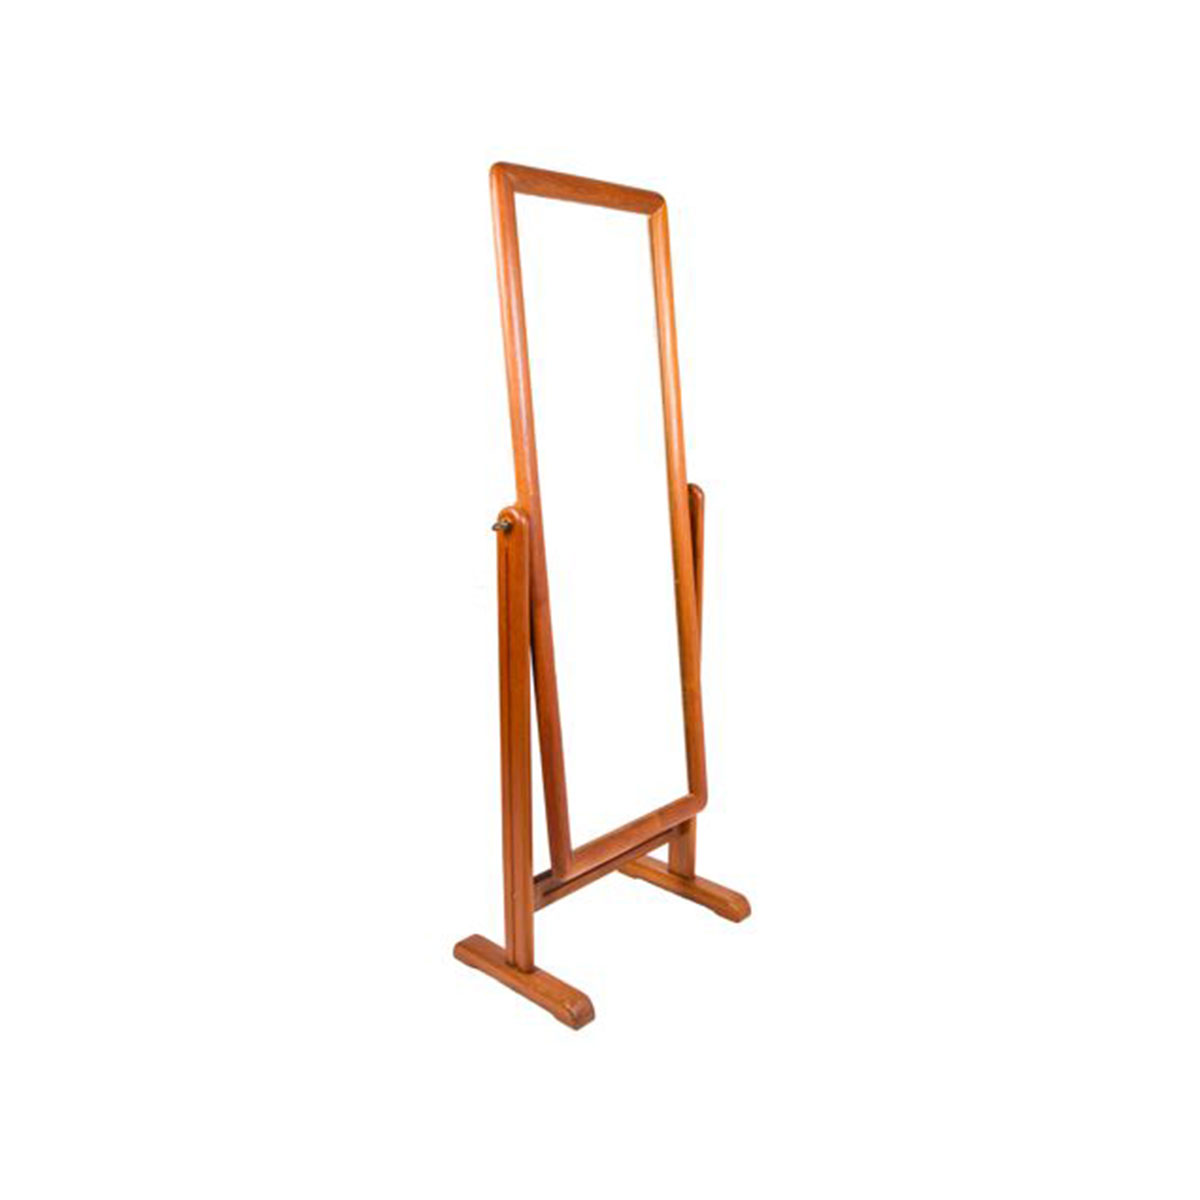 Stylish Danish Modern Teak Cheval Floor Mirror